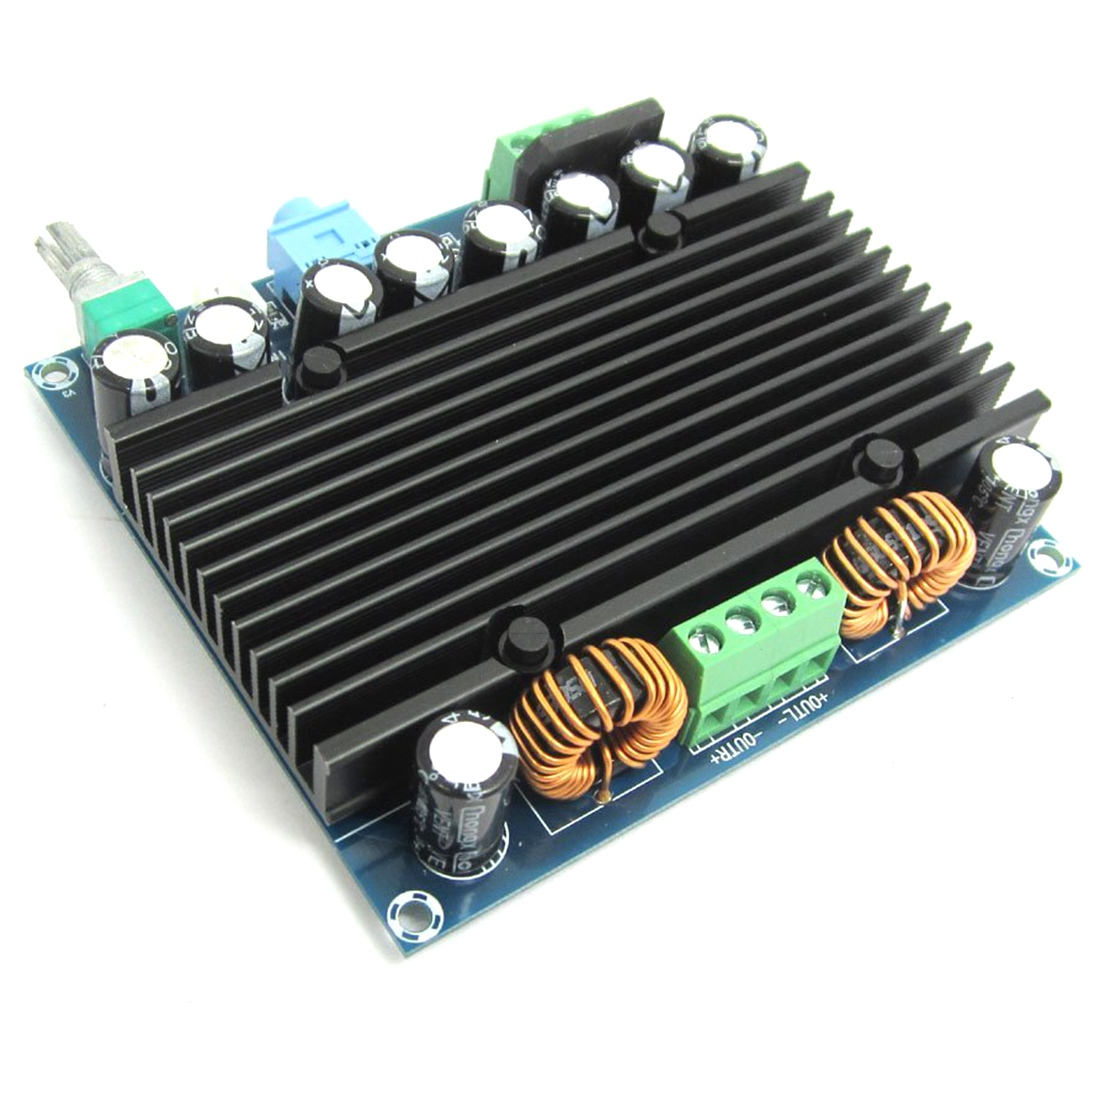 TDA8954 <font><b>HiFi</b></font> 210Wx2 High Power Digital <font><b>Amplifier</b></font> Dual Channel Audio Amp Board image